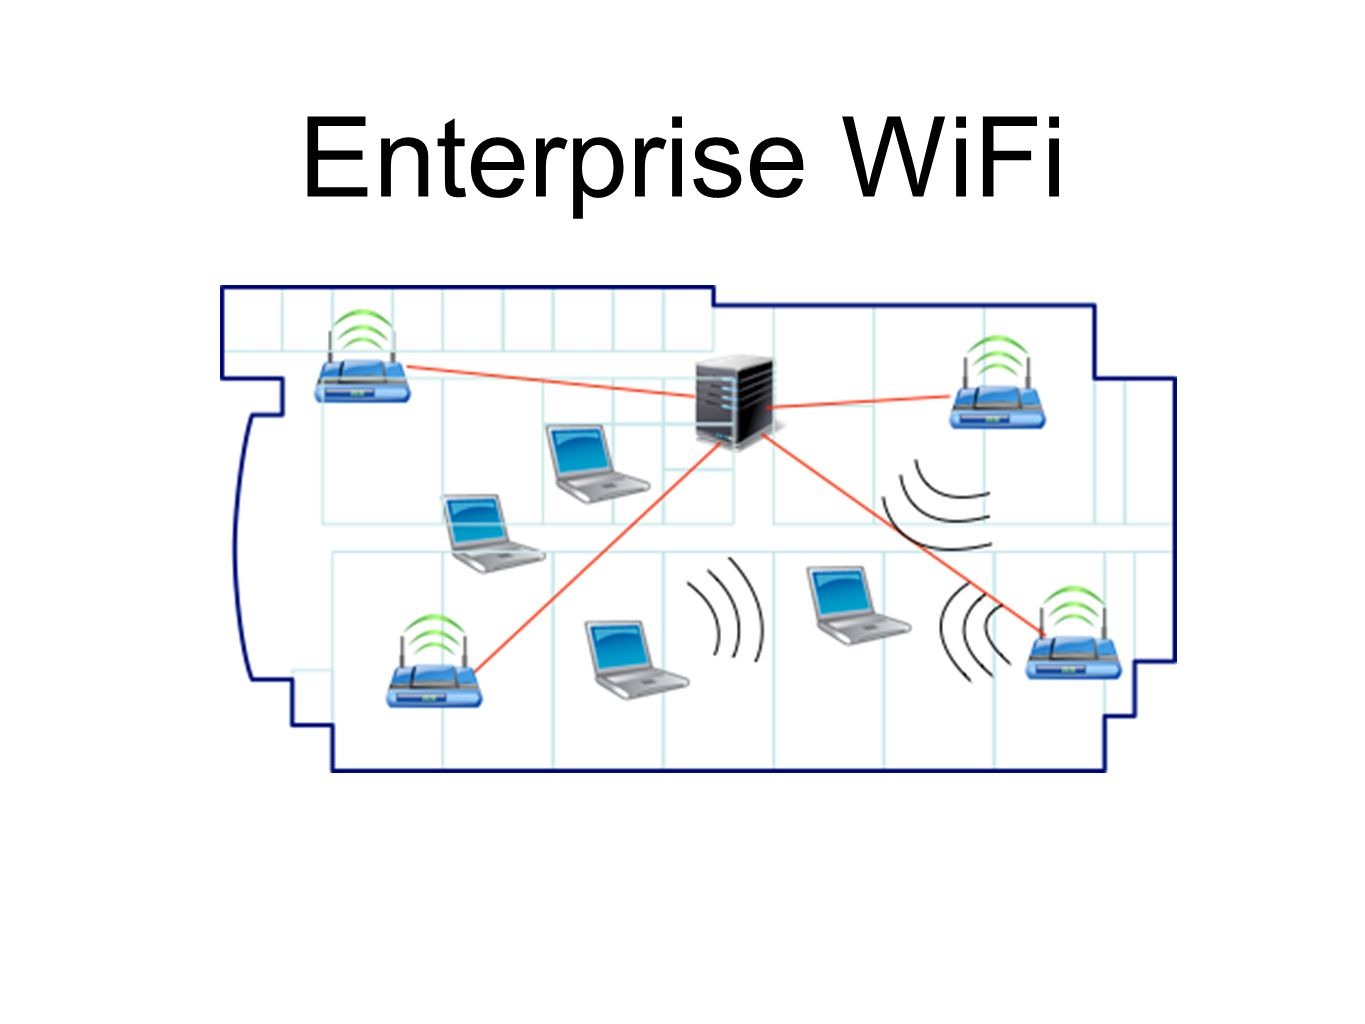 Enterprise WiFi